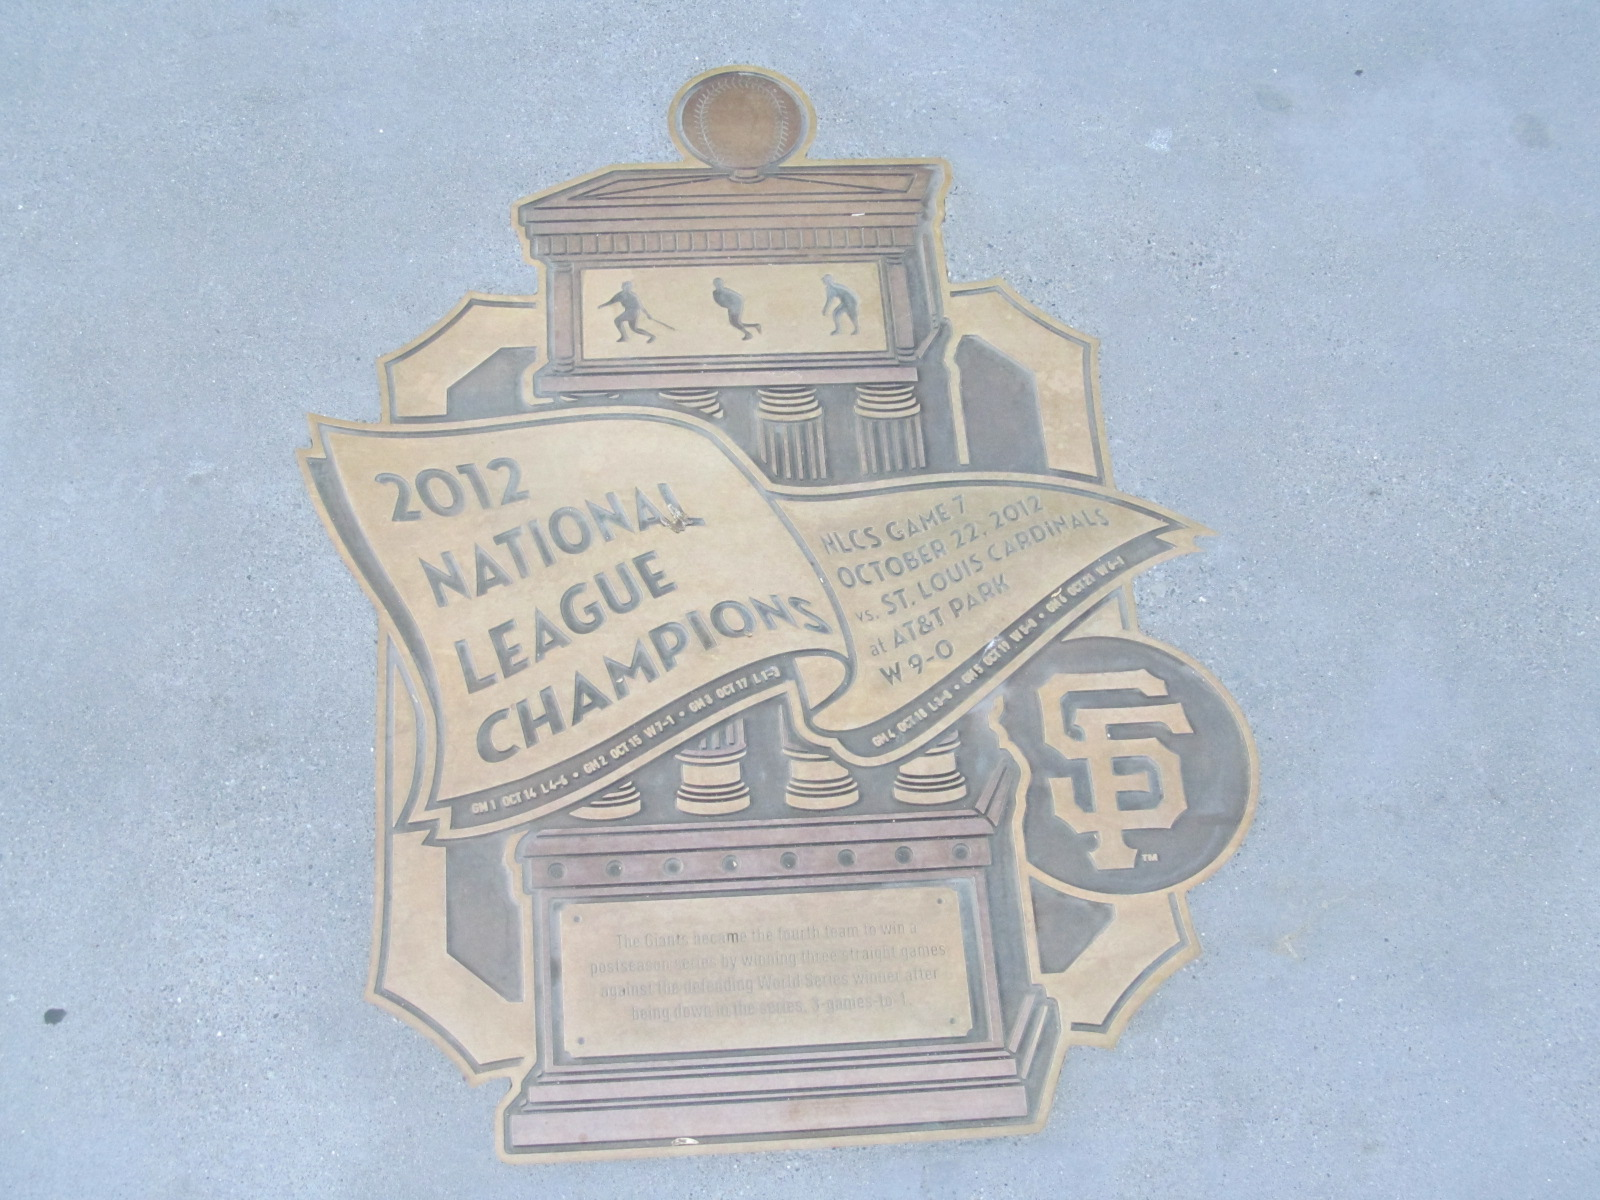 2012 National League Champions Plaque